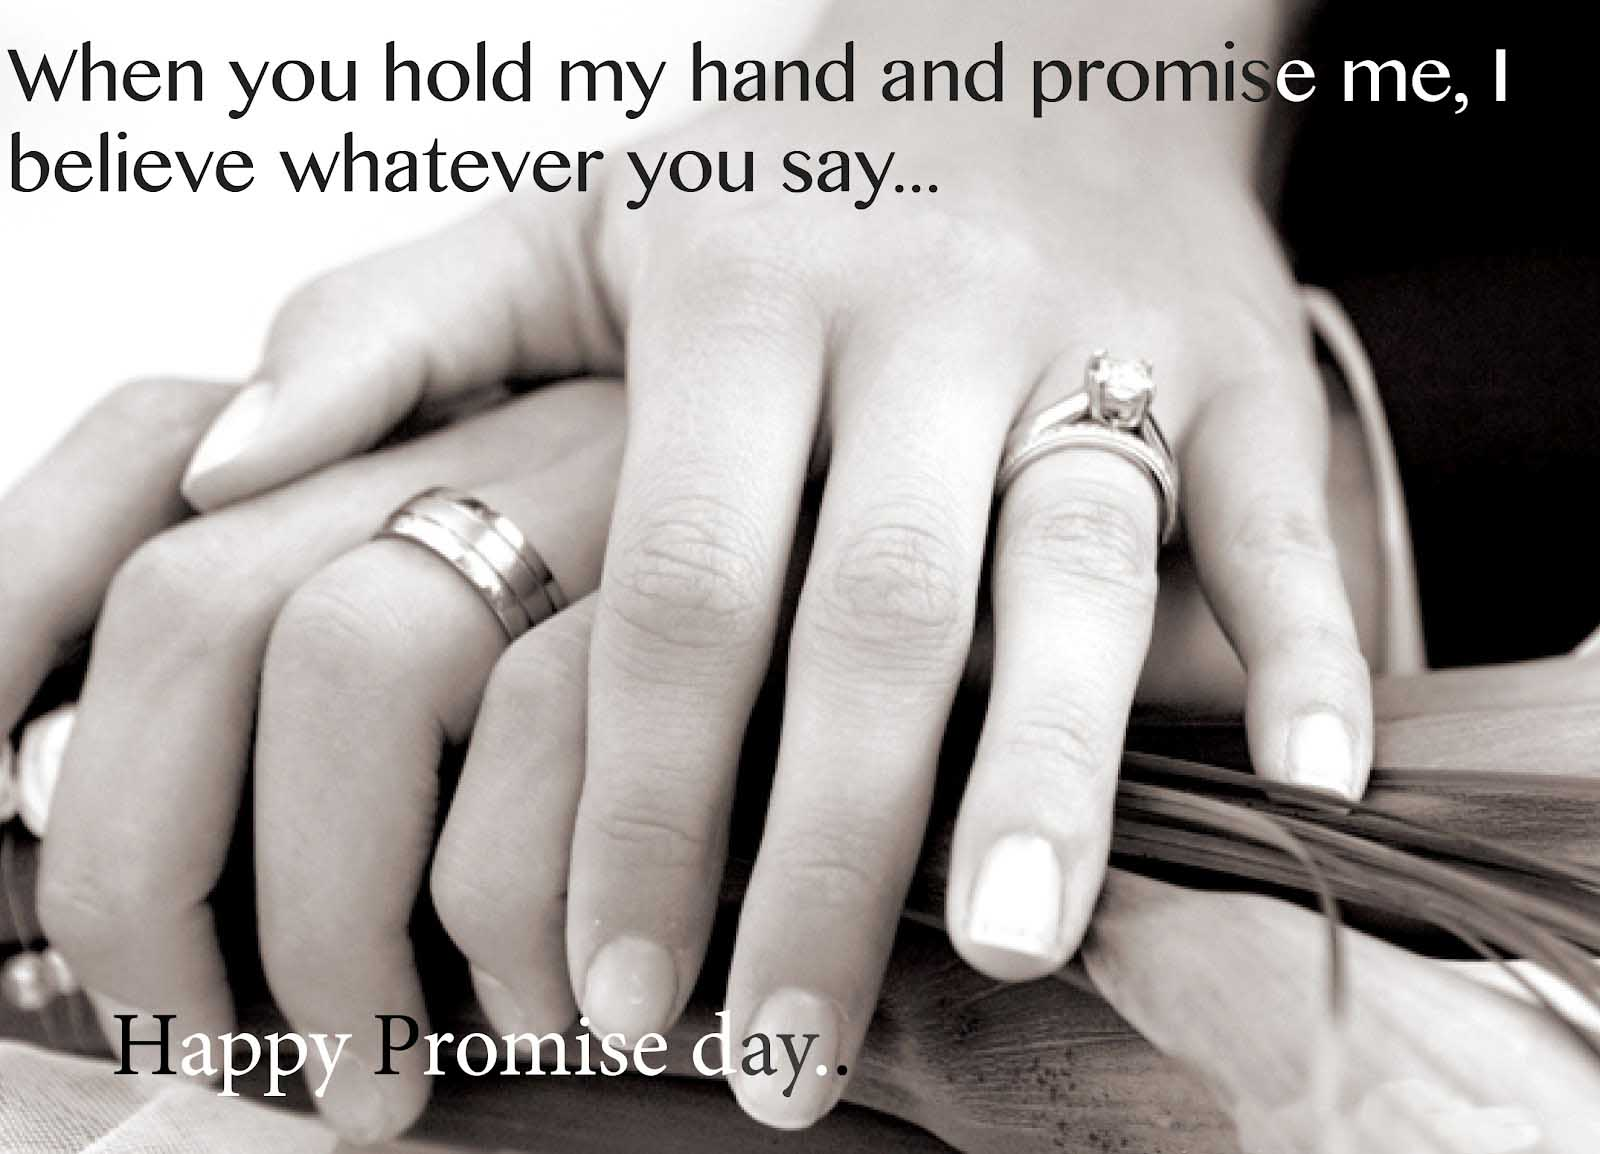 happy promise day wishes love valentine picture image quotes hd wallpaper